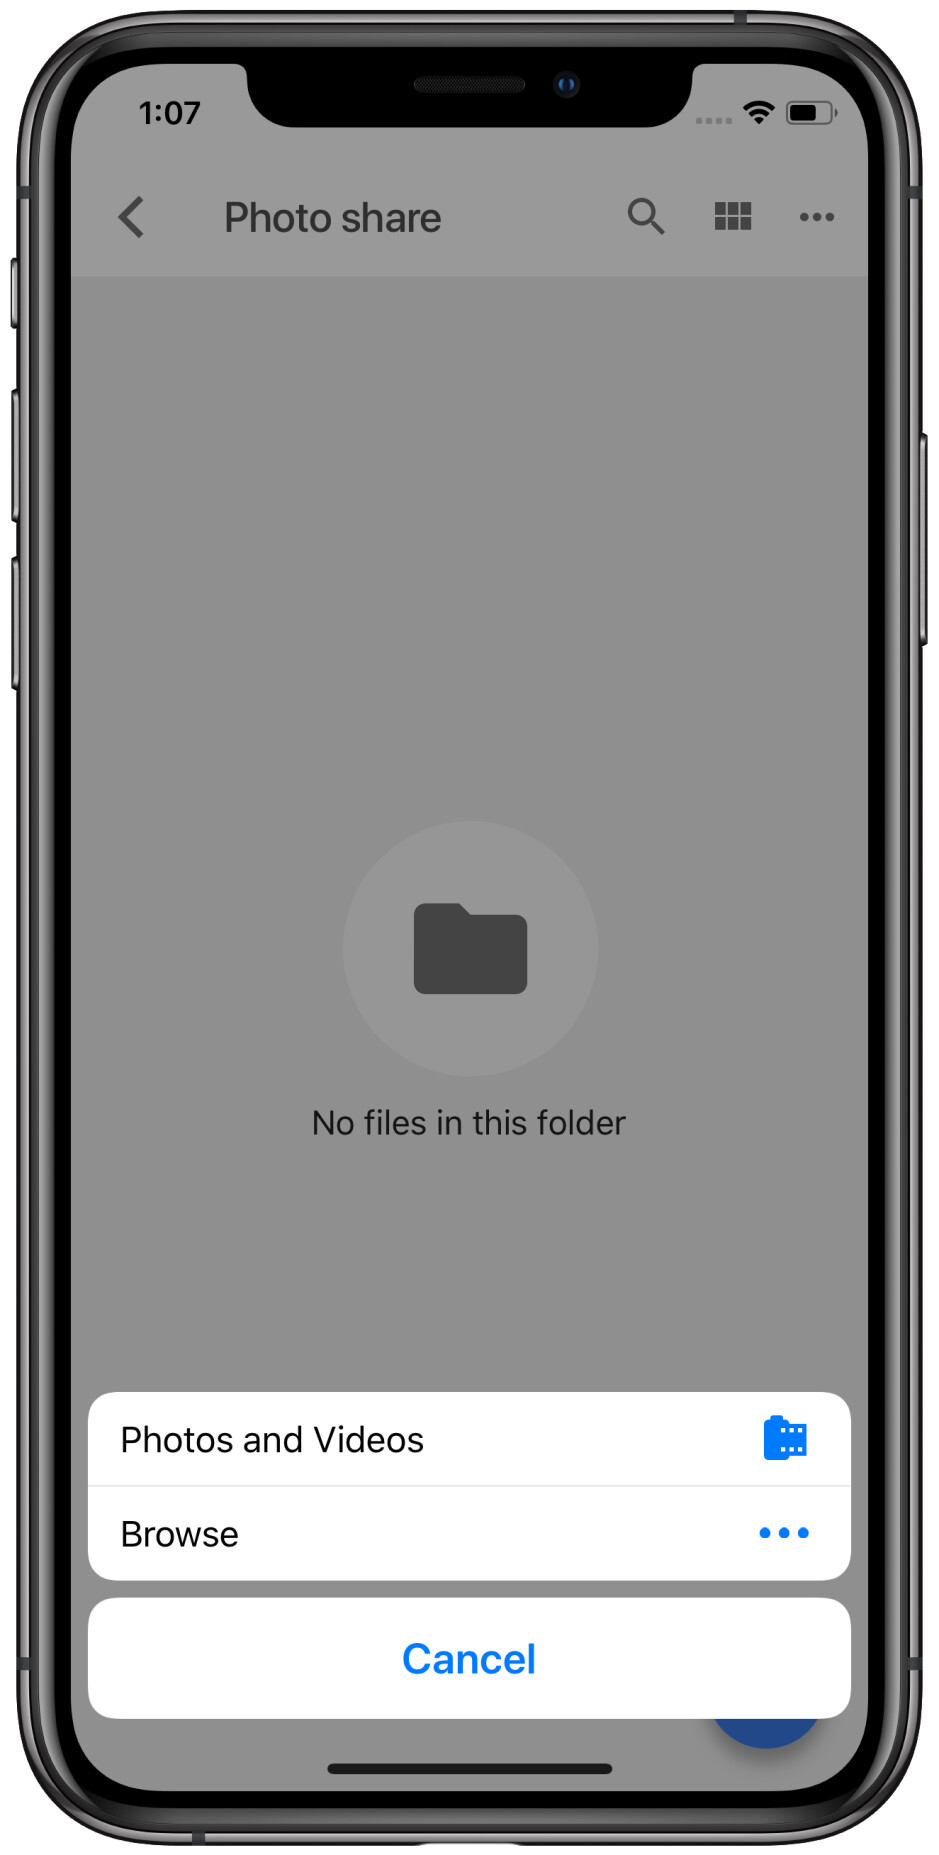 How to send photos and videos from an iPhone to an Android phone